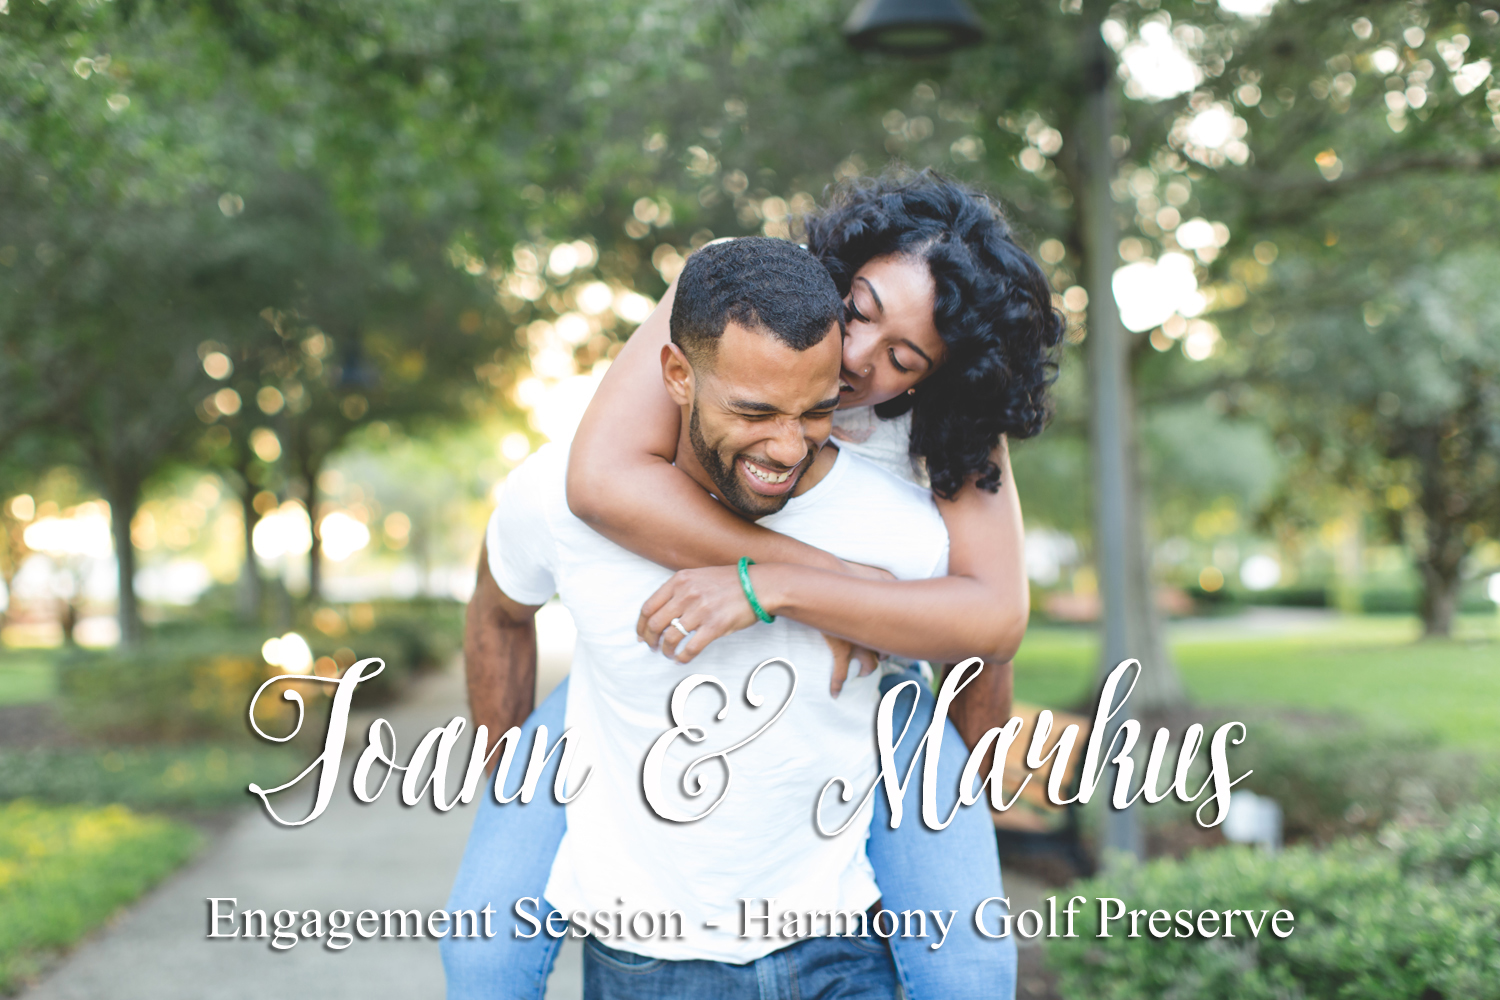 1 Joann Website - Harmony Golf Preserve Engagement Photographer - Harmony Golf Preserve Wedding Photographer - Destination Orlando Wedding Photographer - Jaime DiOrio.jpg